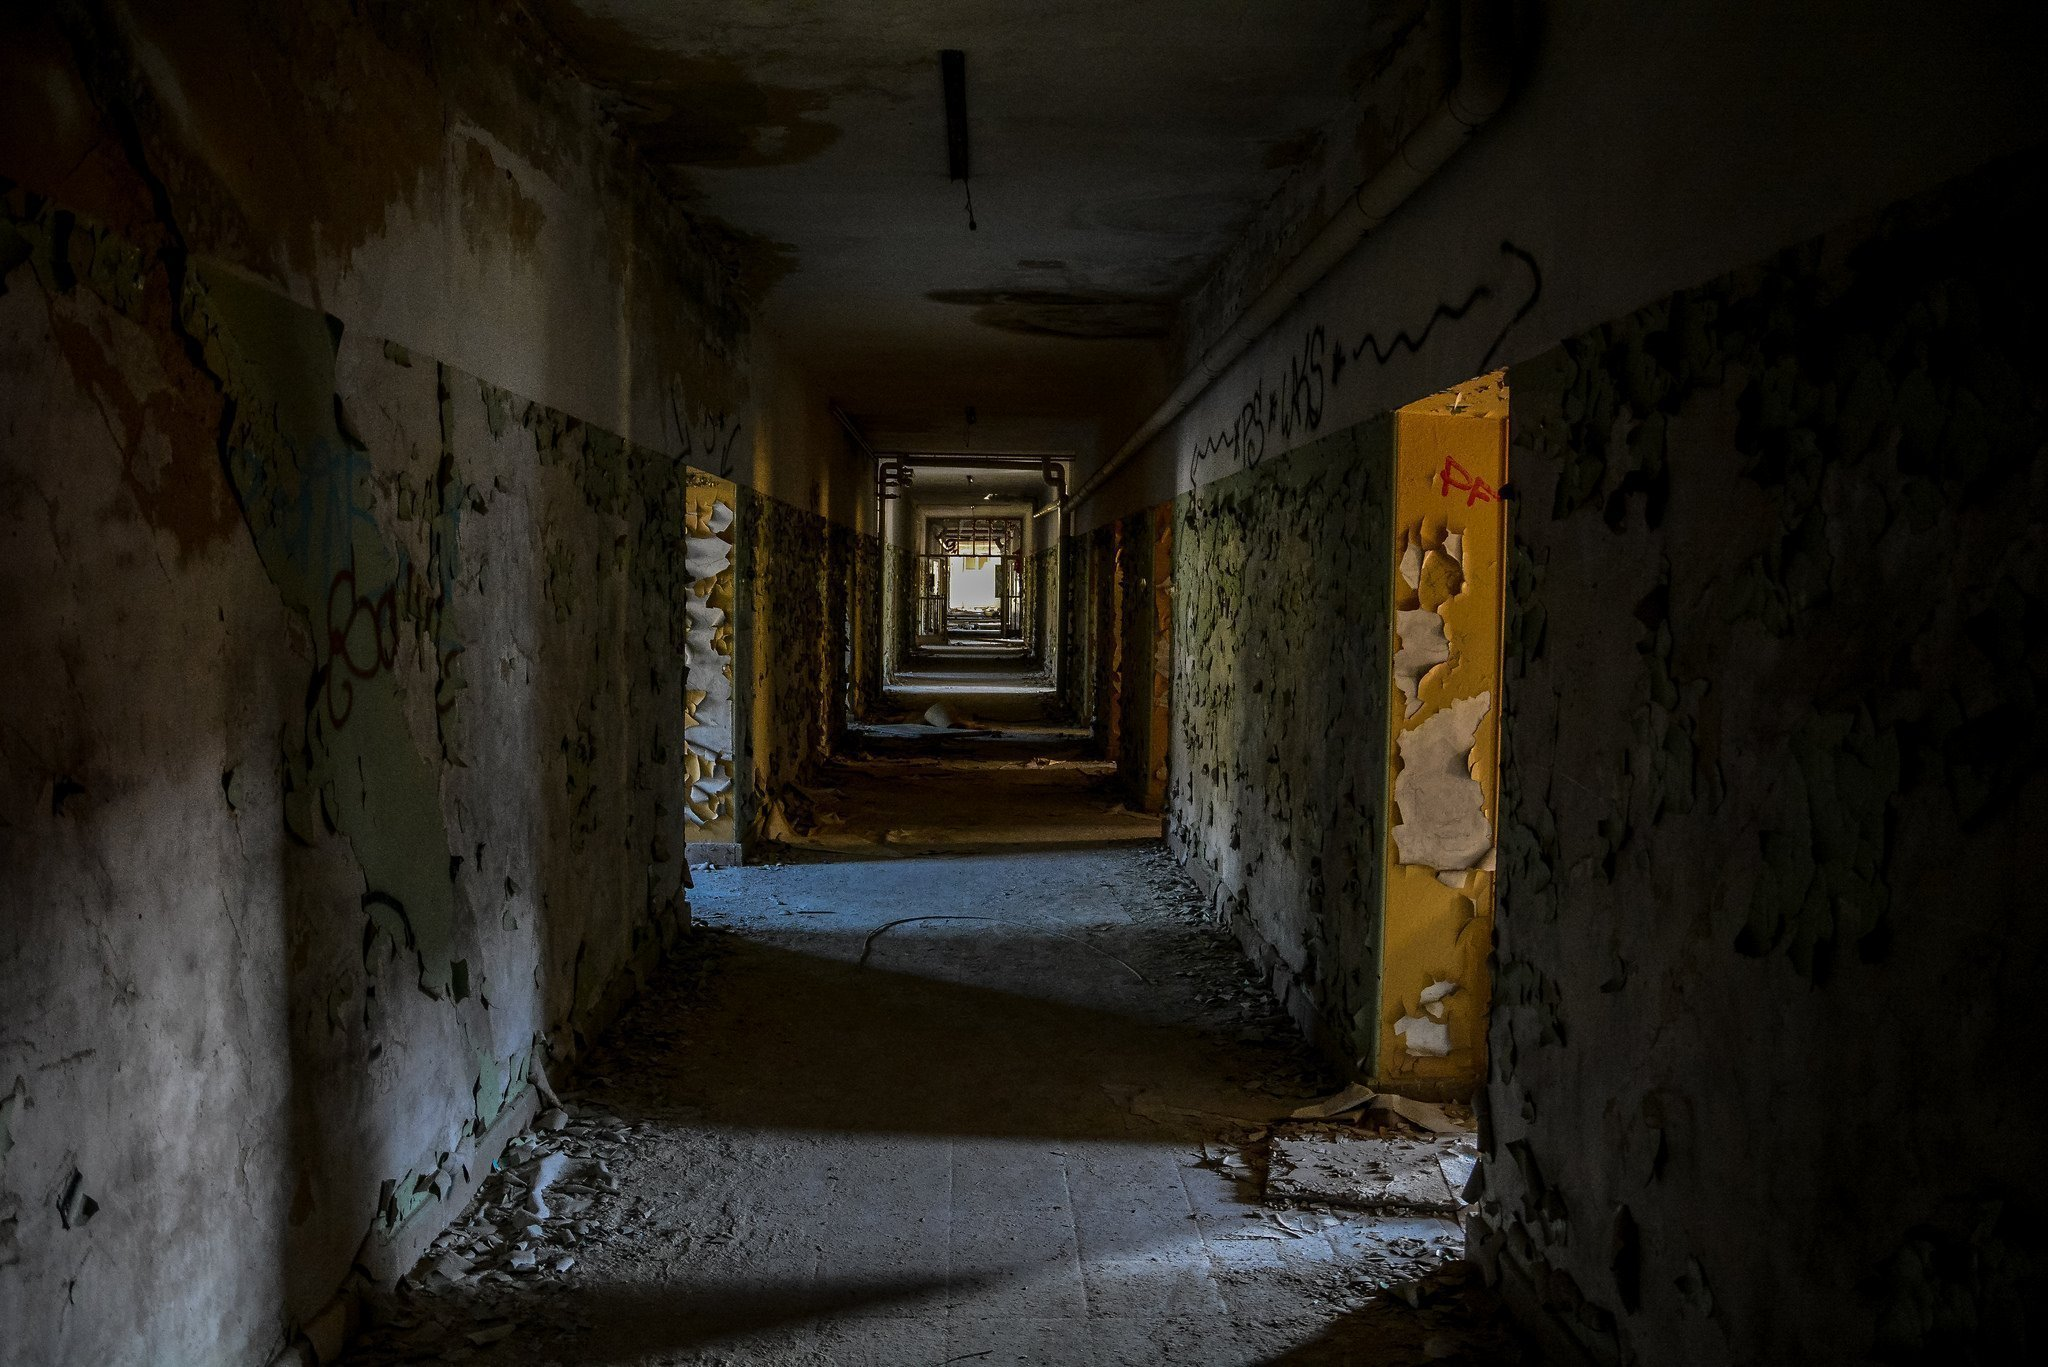 abandoned hospital berlin verlassenes krankenhaus lost places urbex ruins germany doctor villa hallway